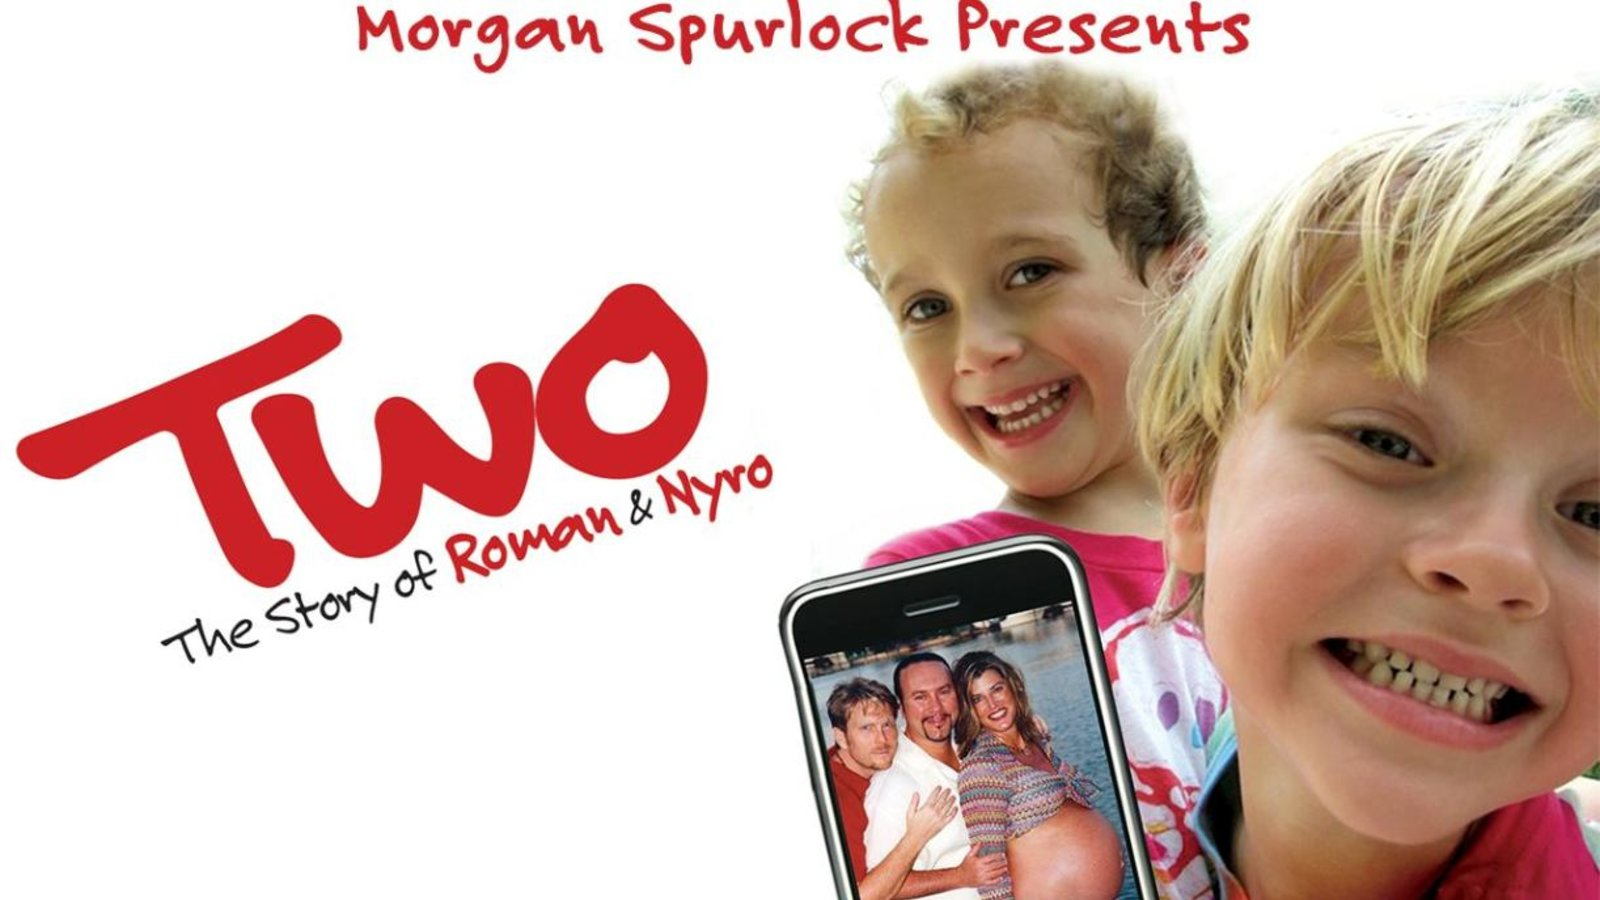 Two: The Story of Roman and Nyro - Legendary Songwriter Desmond Child